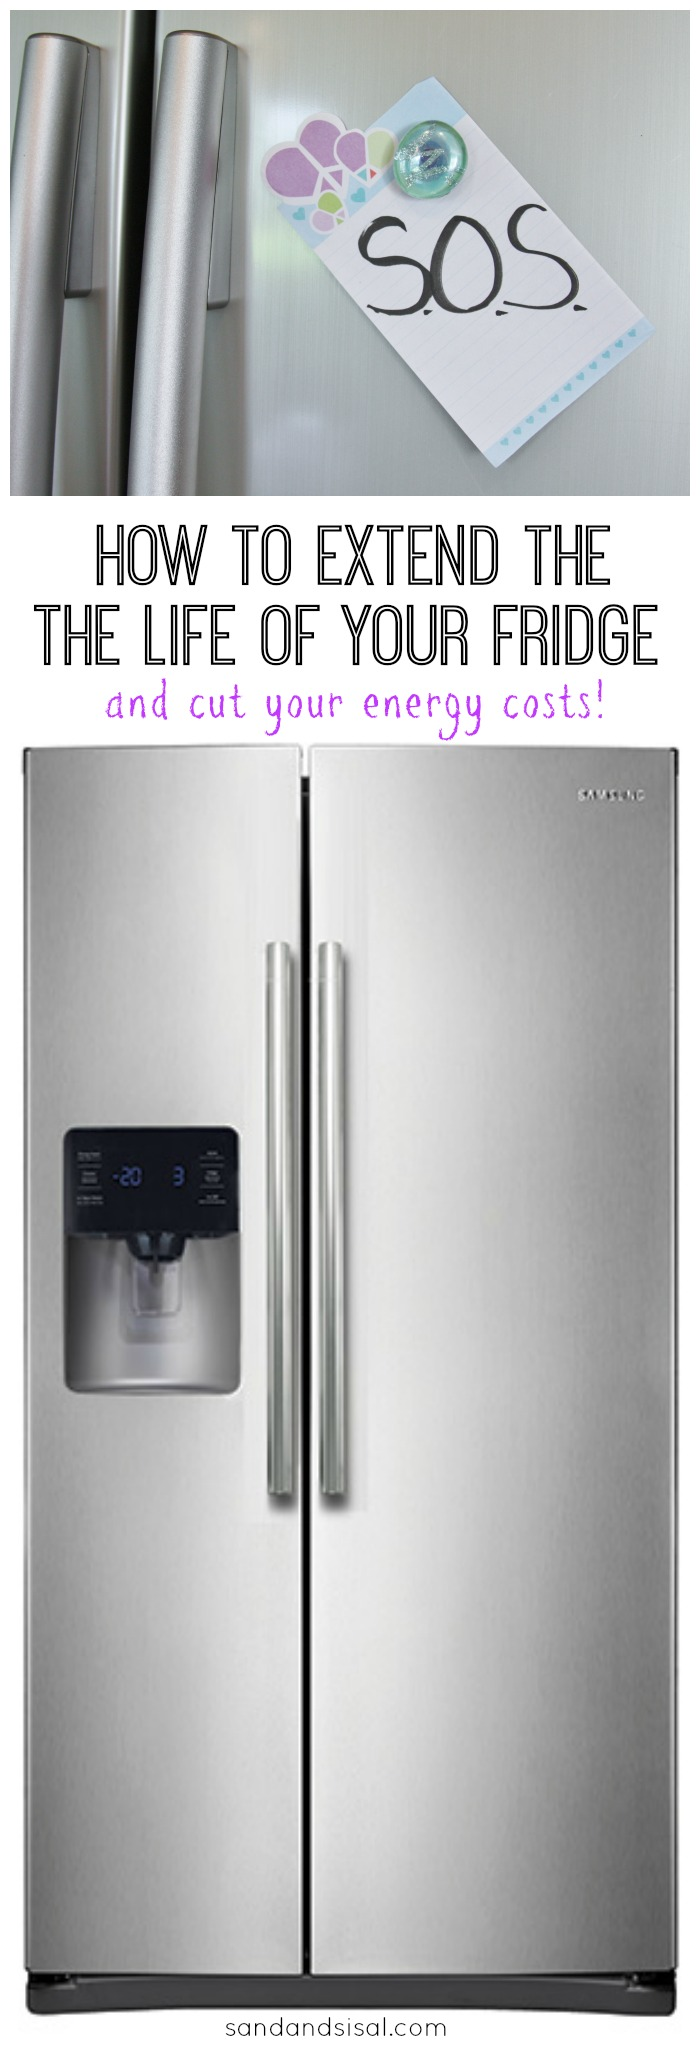 This is a great tip on How to Extend the Life of Your Fridge and cut energy costs